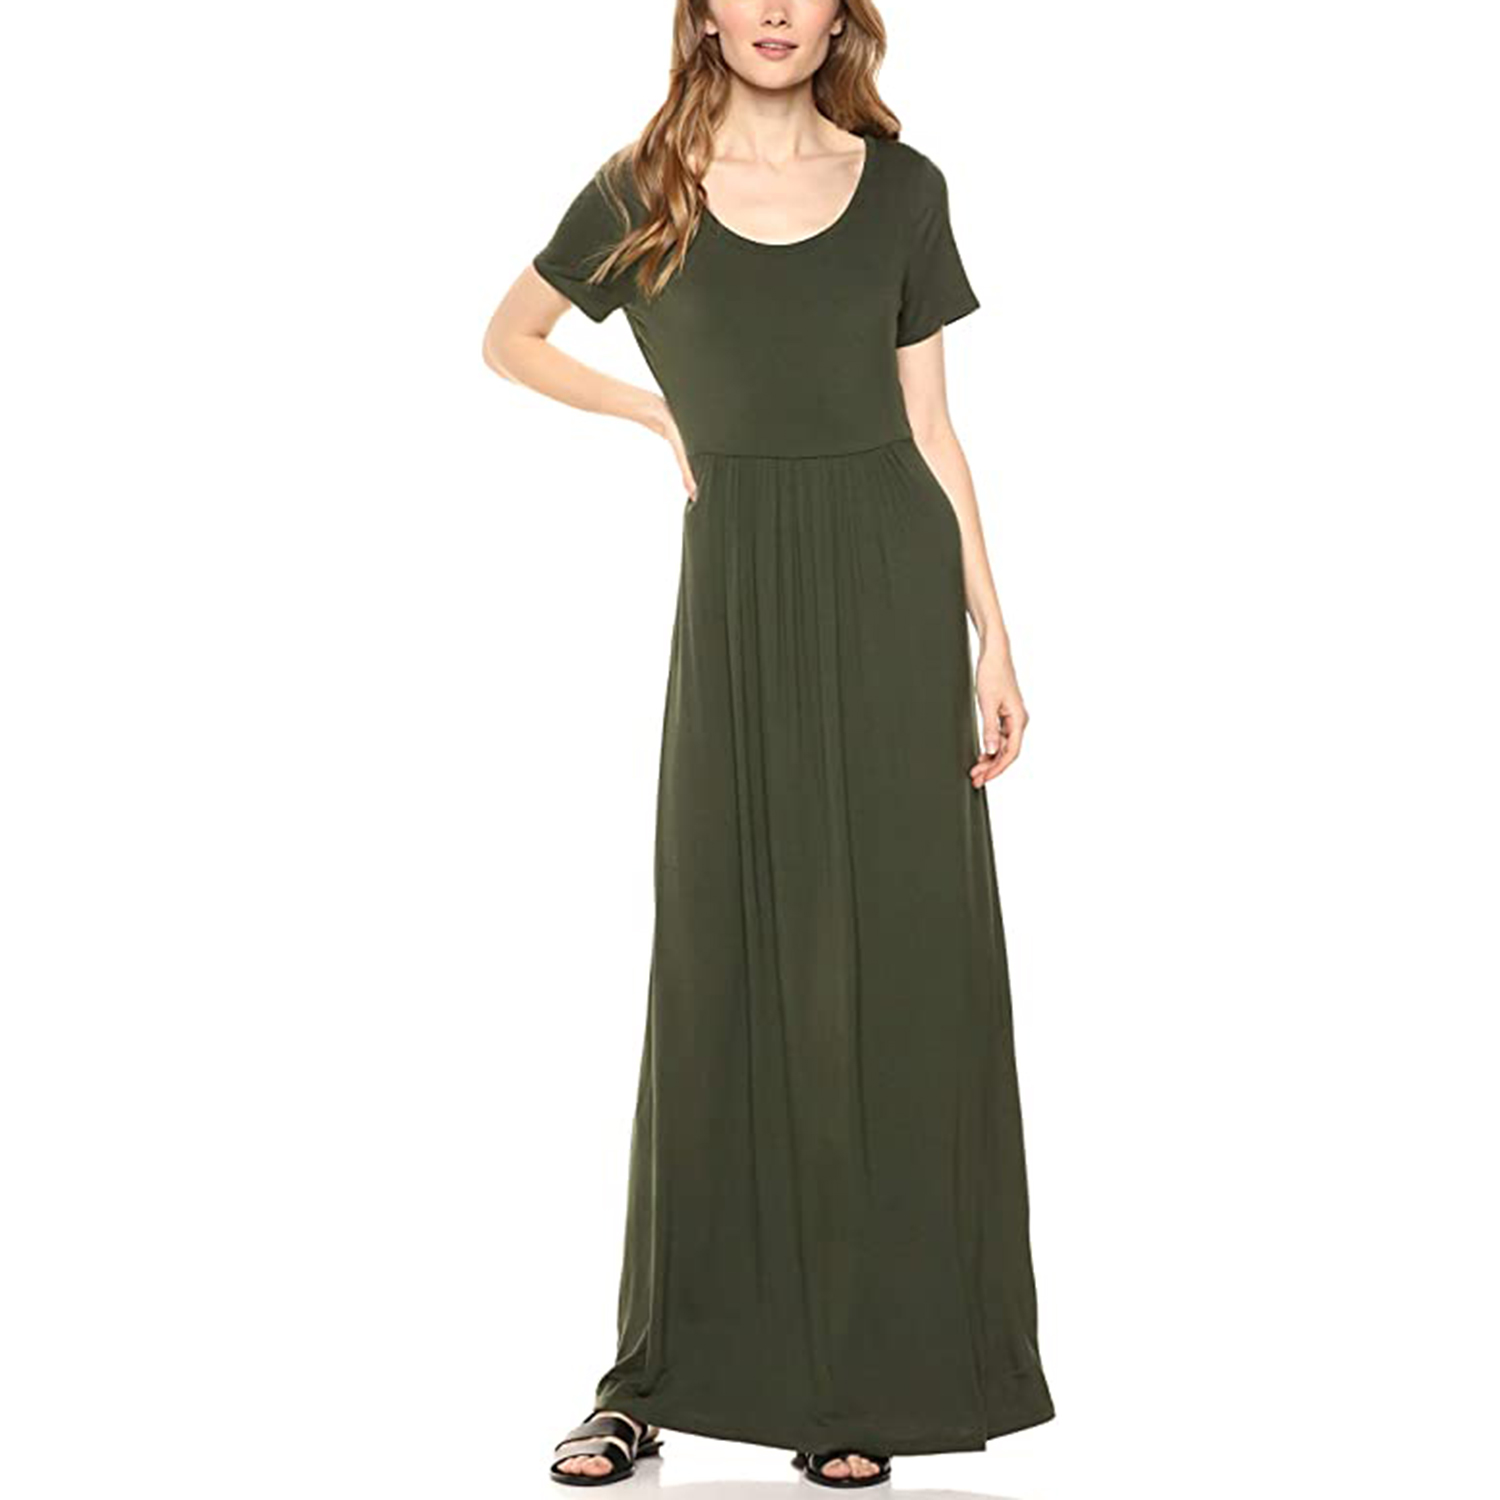 Daily Ritual Women's Jersey Short-Sleeve Scoop-Neck Empire-Waist Maxi Dress